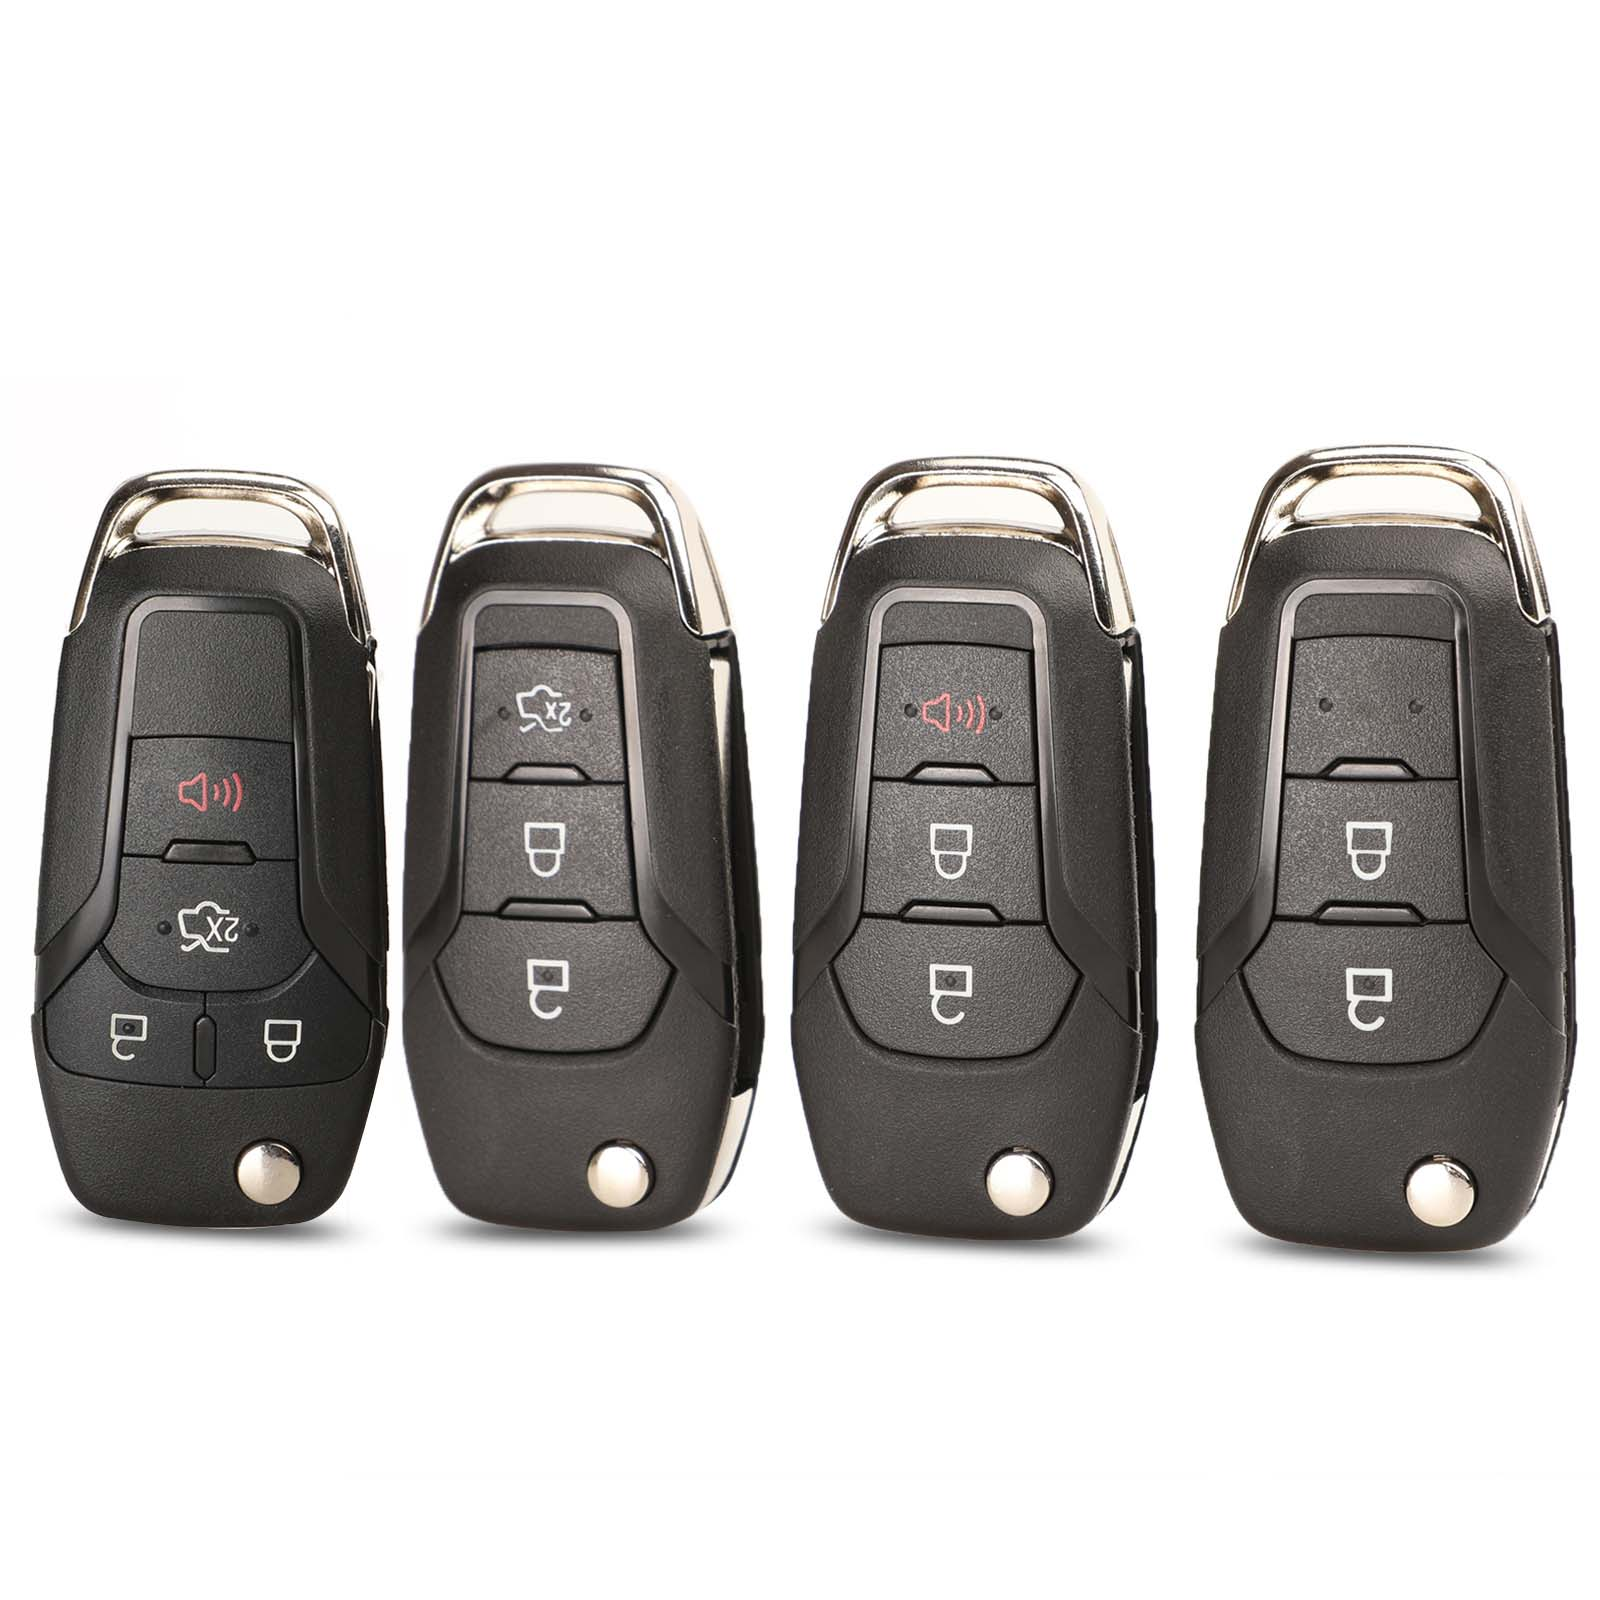 jingyuqin Flip Remote <font><b>Key</b></font> Shell Of <font><b>Ford</b></font> Fob for <font><b>Ford</b></font> <font><b>Fusion</b></font> Edge Explorer 2013 2014 <font><b>2015</b></font> FCC ID: N5F-A08TAA HU101 Blade image